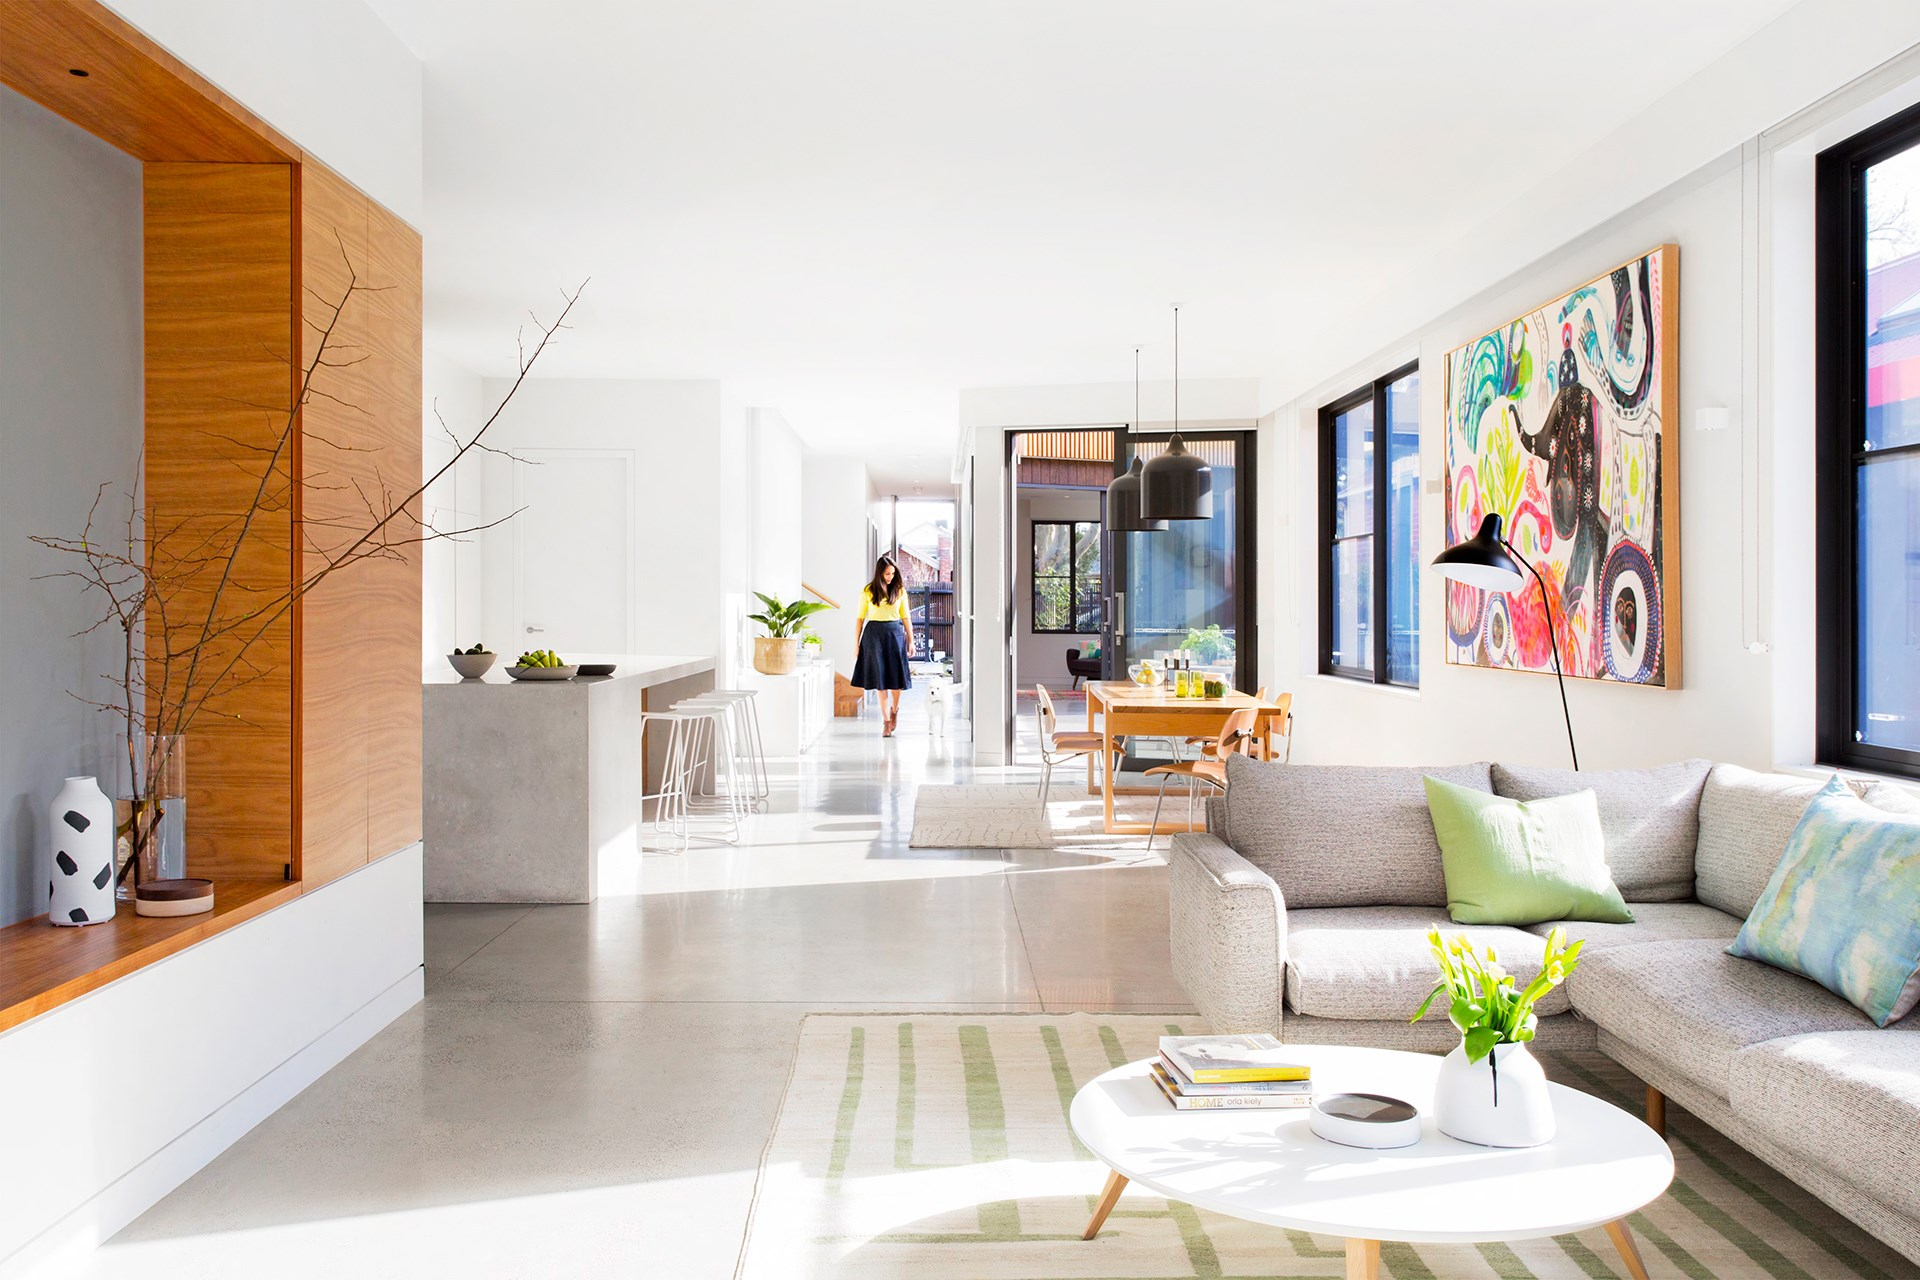 """An open-plan layout makes for easy living in the home of comedian/radio host Dave Hughes and family, with windows positioned to keep the house cool in summer and warm in winter. [Take a look around](http://www.homestolove.com.au/gallery-funny-side-up-dave-hughes-2659